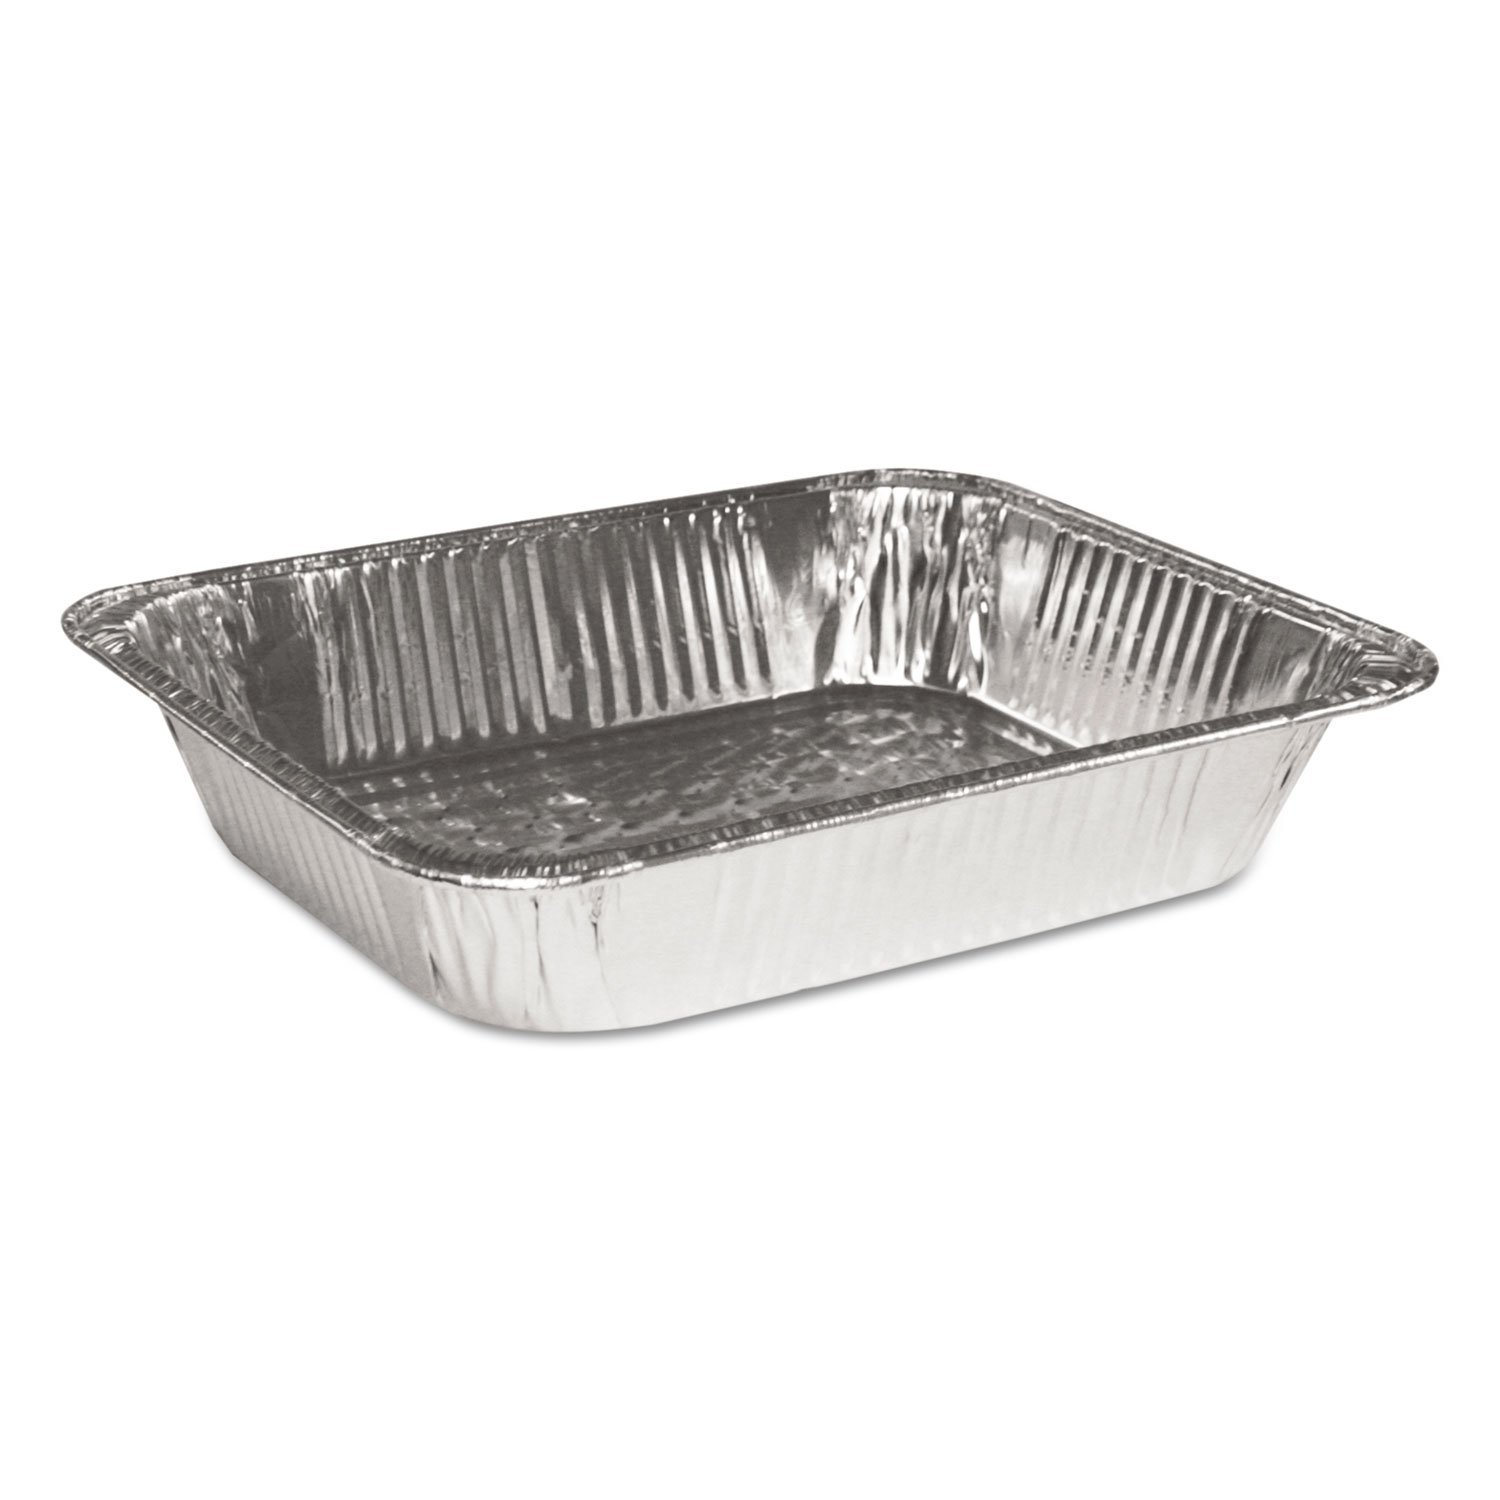 Foil Lids available, sold separatly Large Disposable Aluminium Foil Baking//Roasting Pan//Tray Gastronorm Box of 100 Half Size Deep 324 x 263 x 65